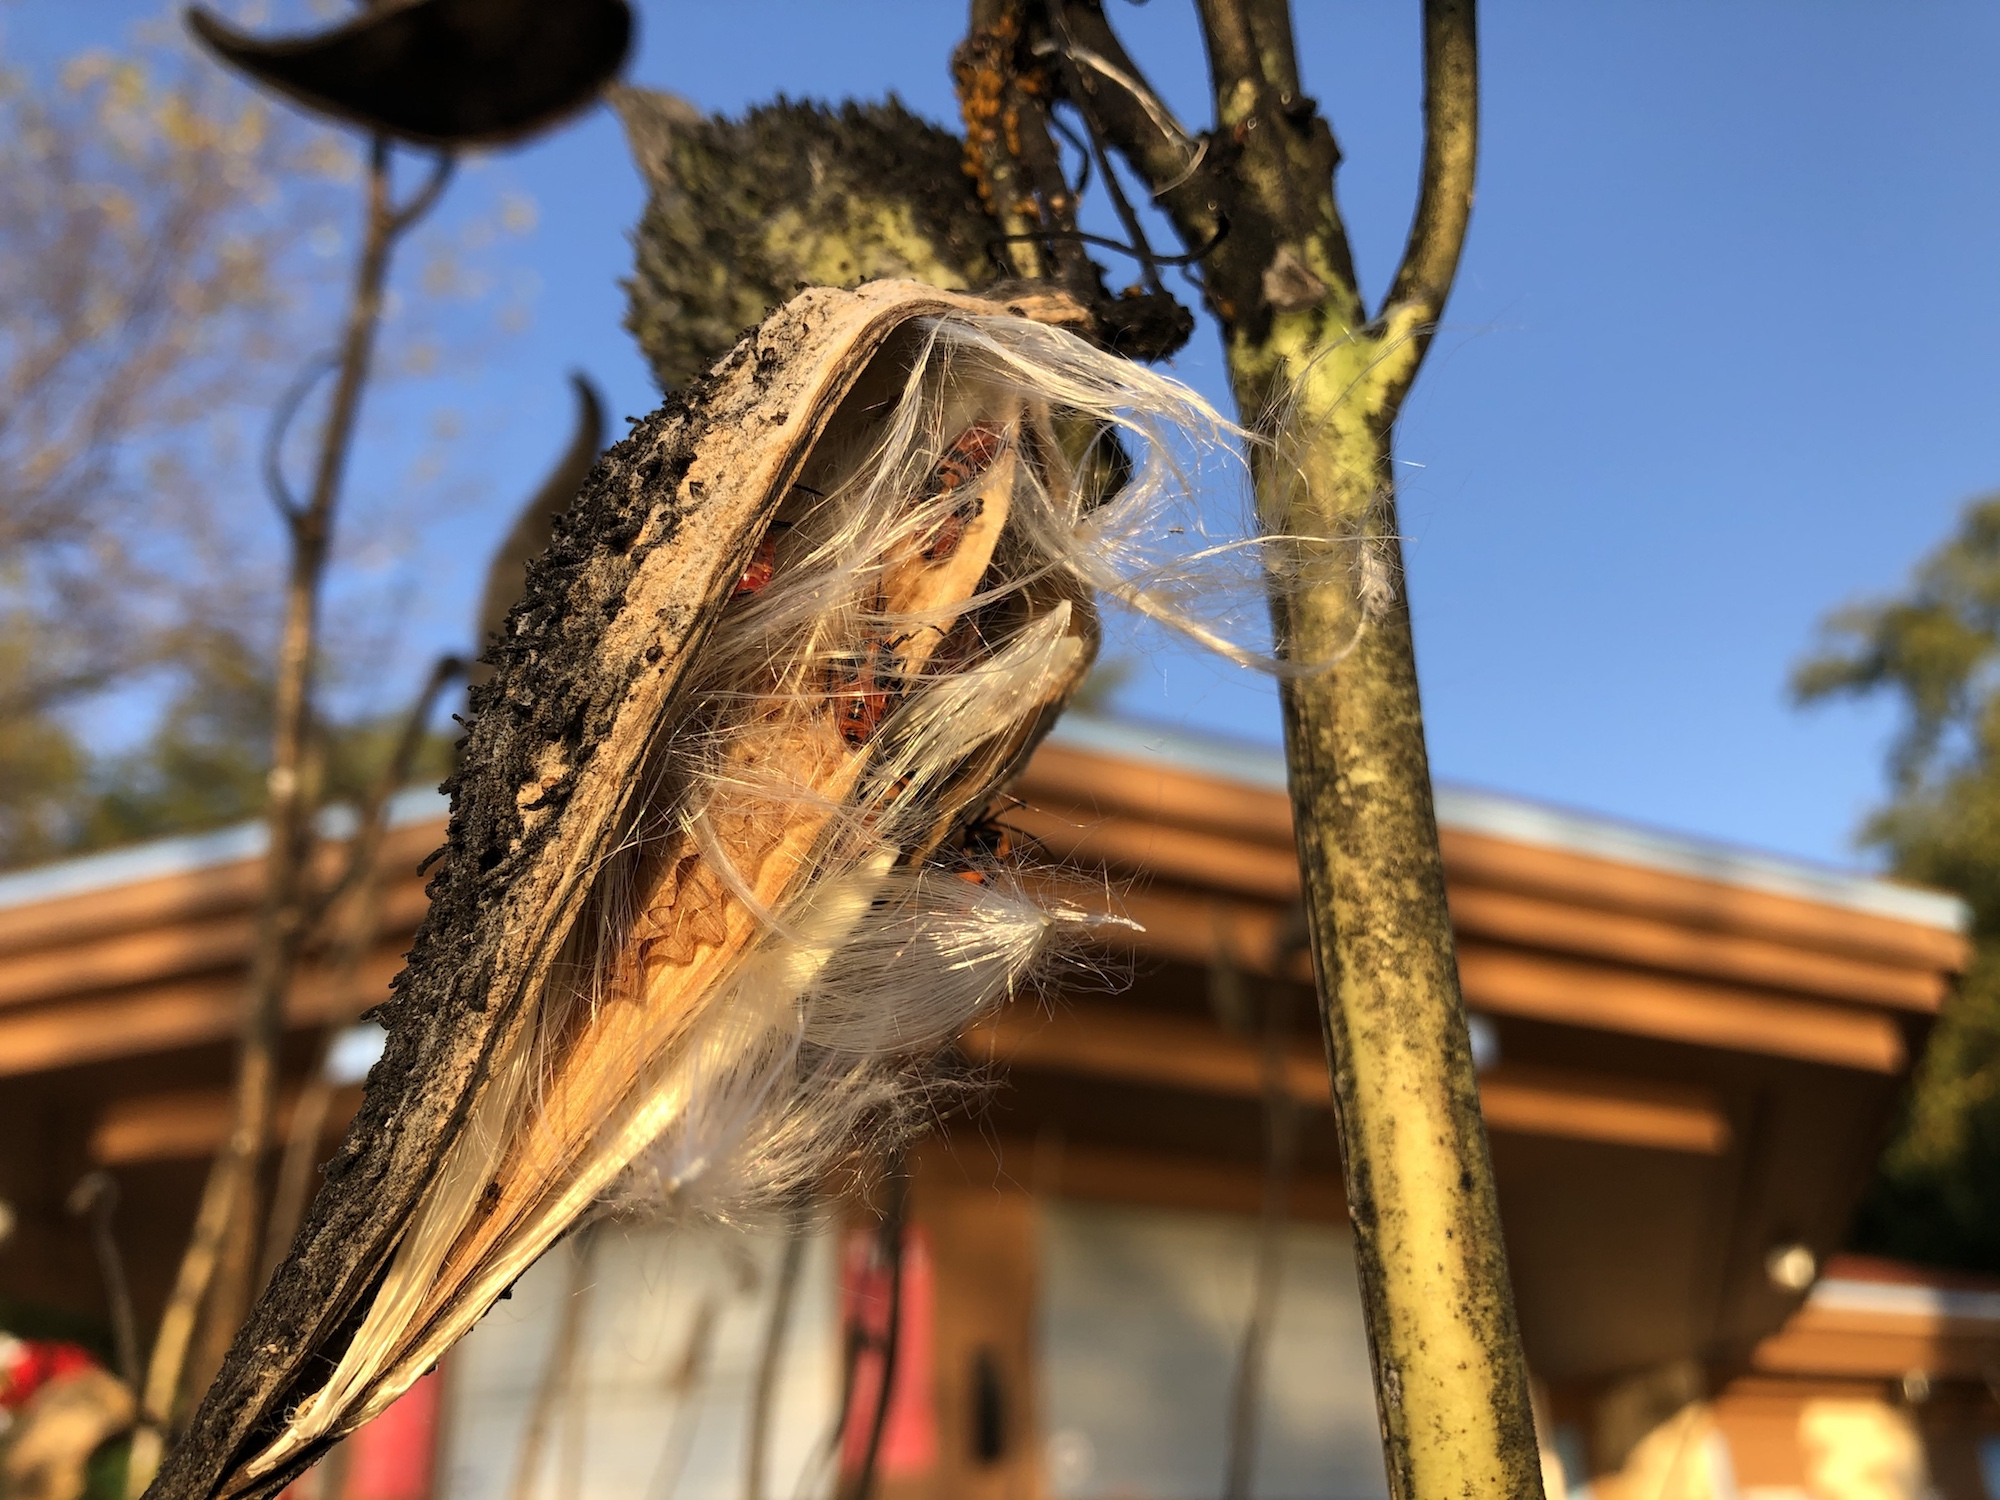 Common Milkweed by Wingra Boats on October 12, 2019.